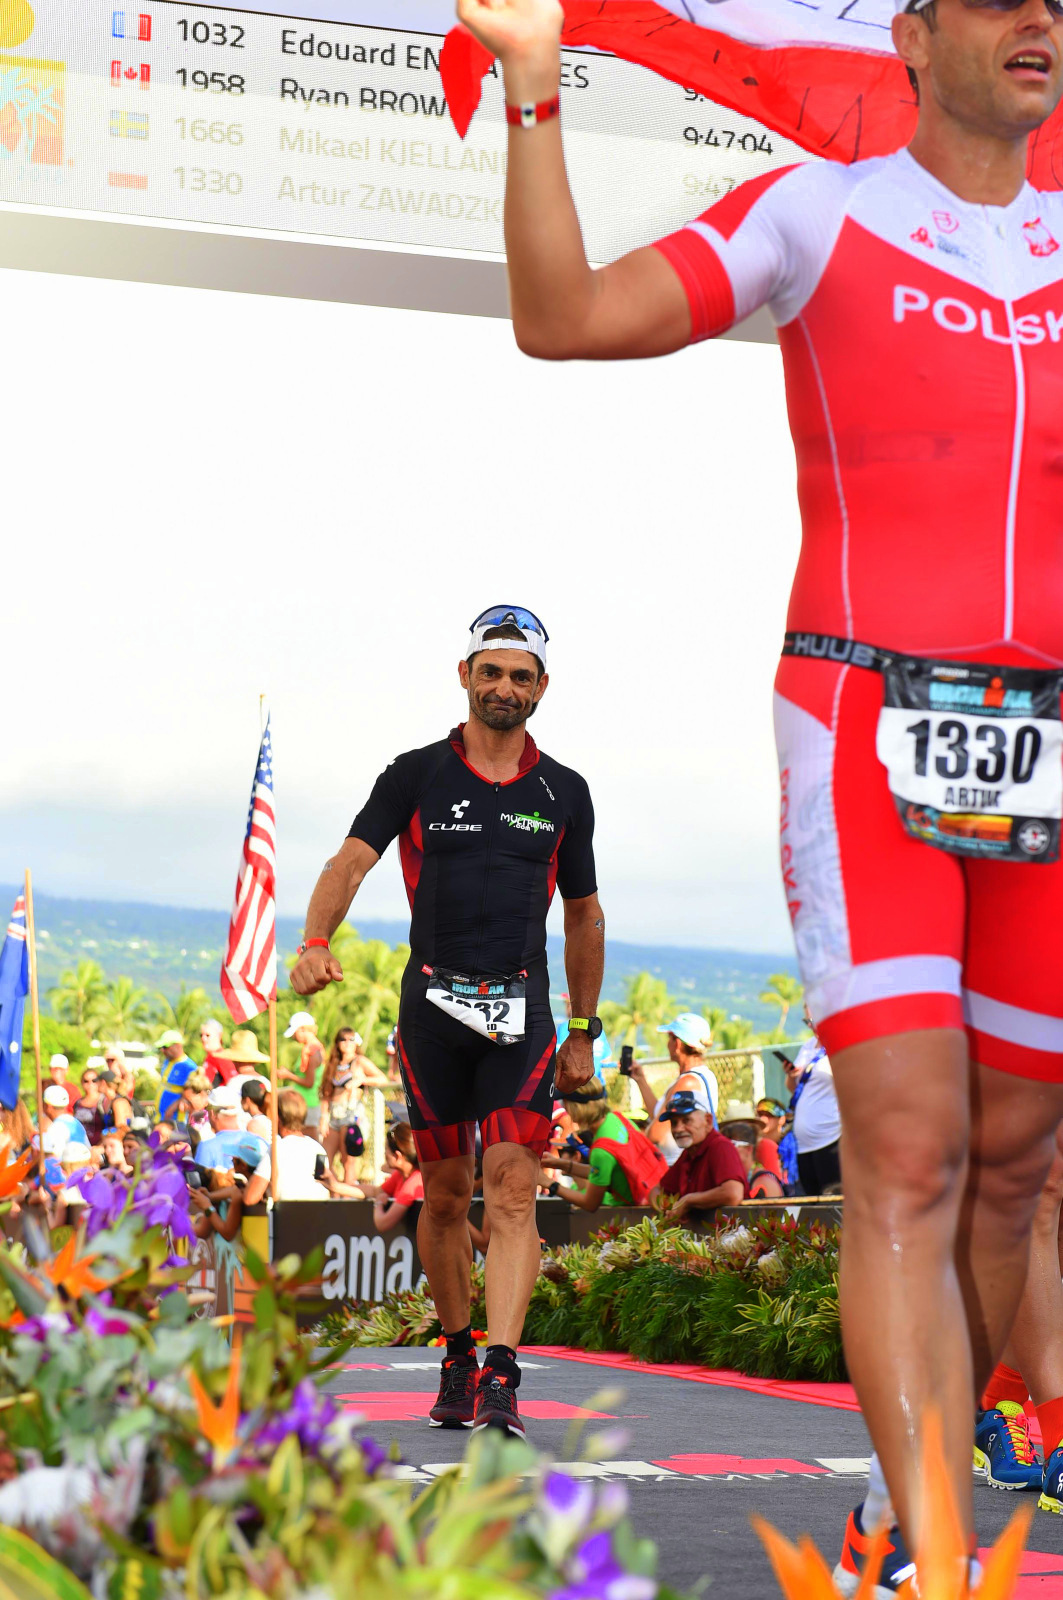 Edouard Entraygues Ironman Hawaii 2018  (17)